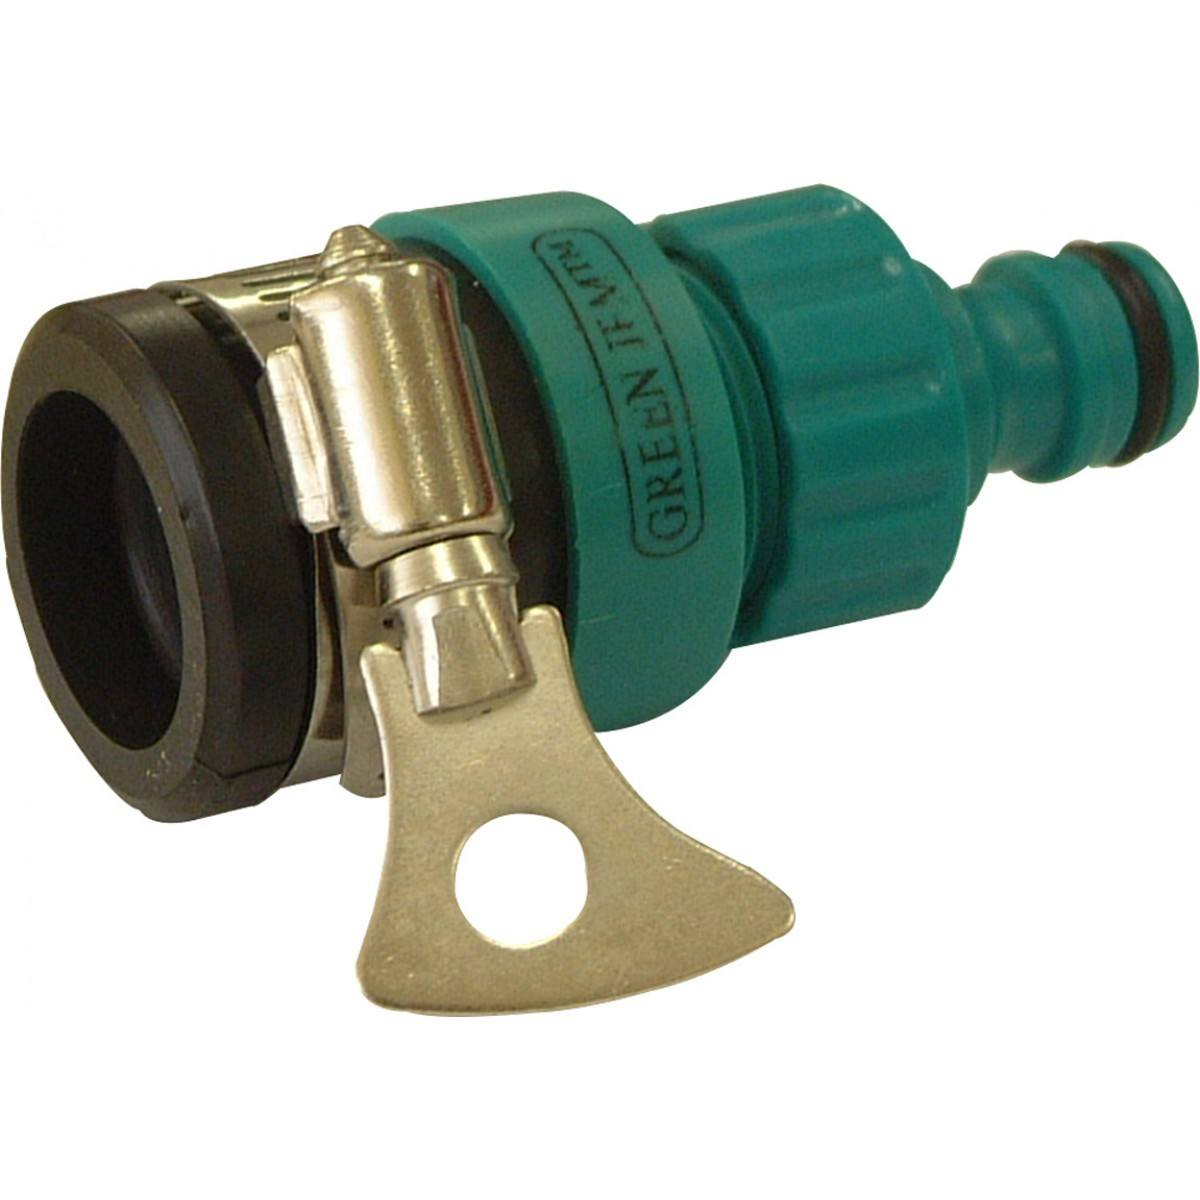 Tap And Hose Connectors Hoses And Accessories Waterirrigation